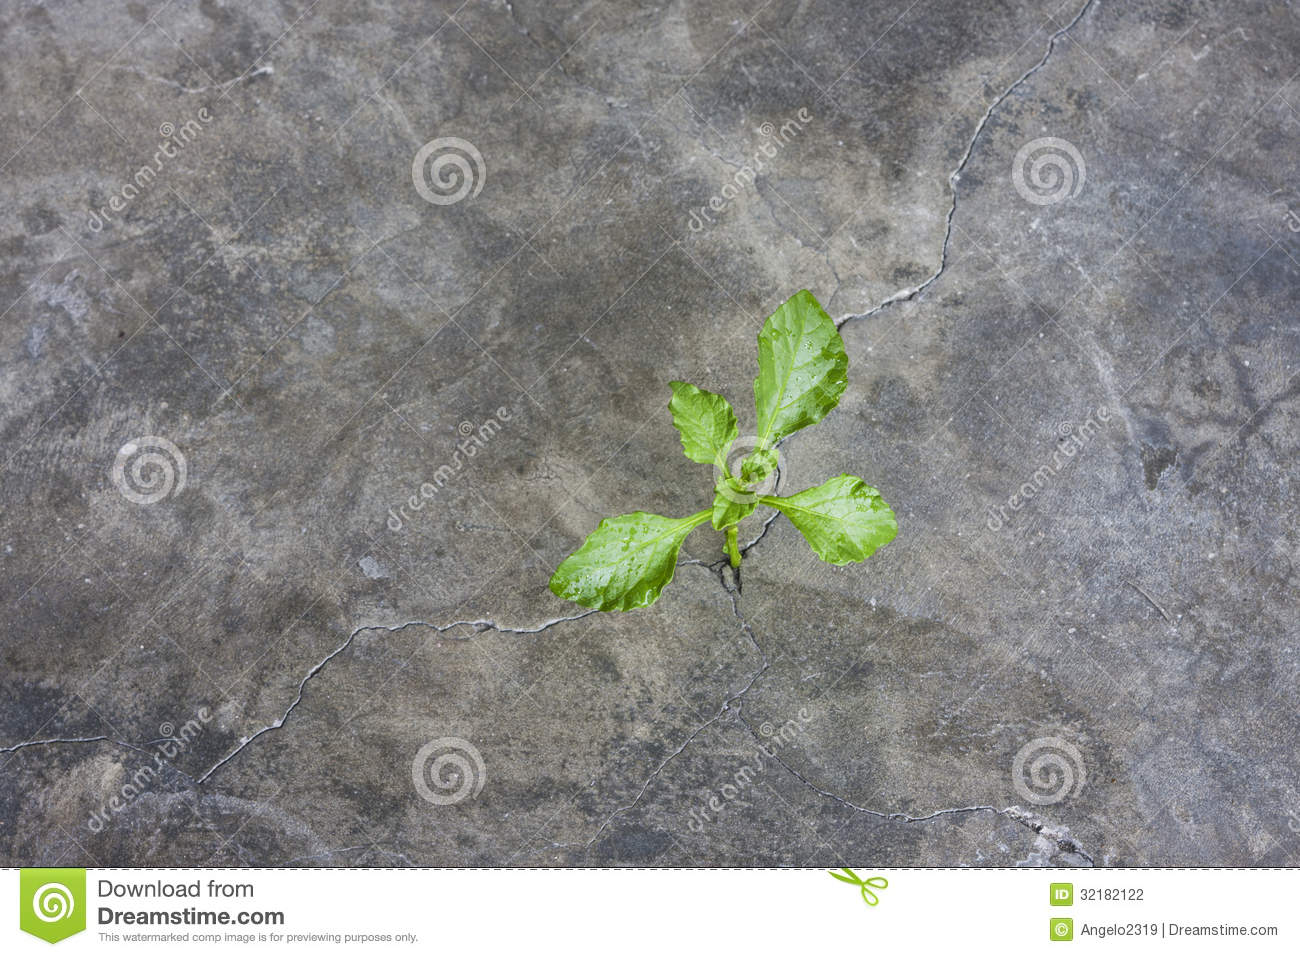 how to kill weeds in cracks of cement